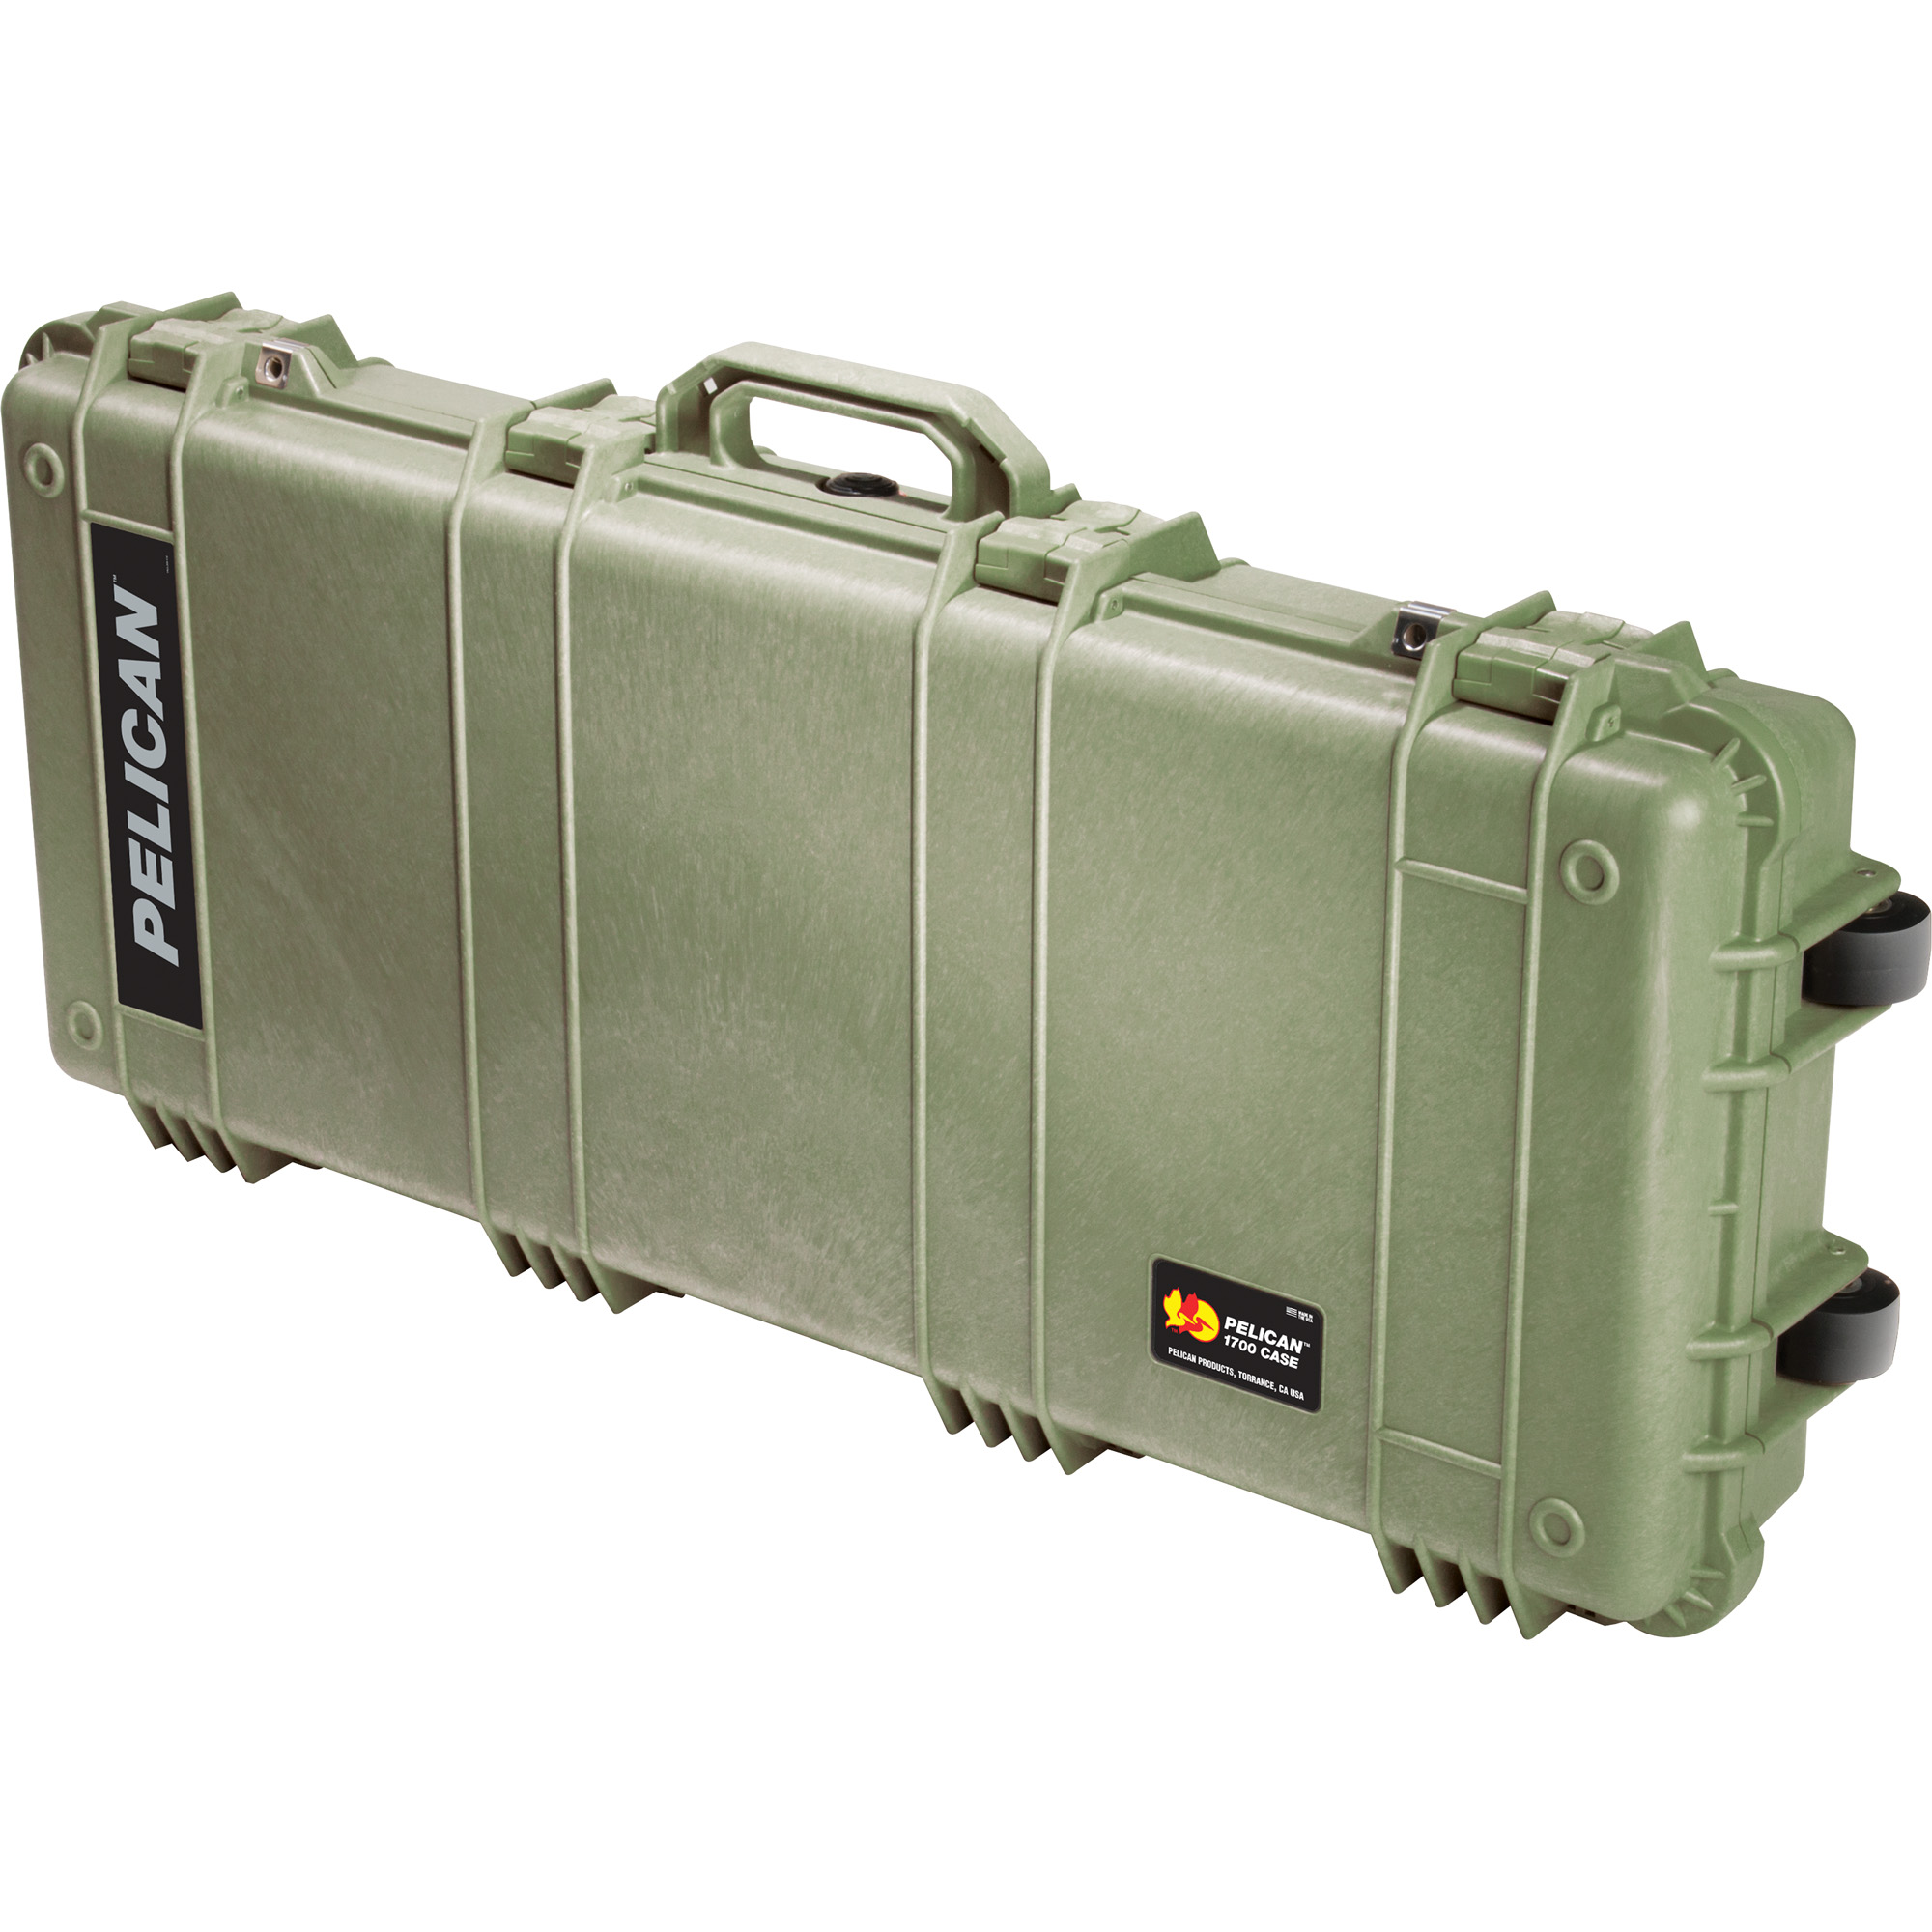 Pelican 1700 Protector Long Case Odg